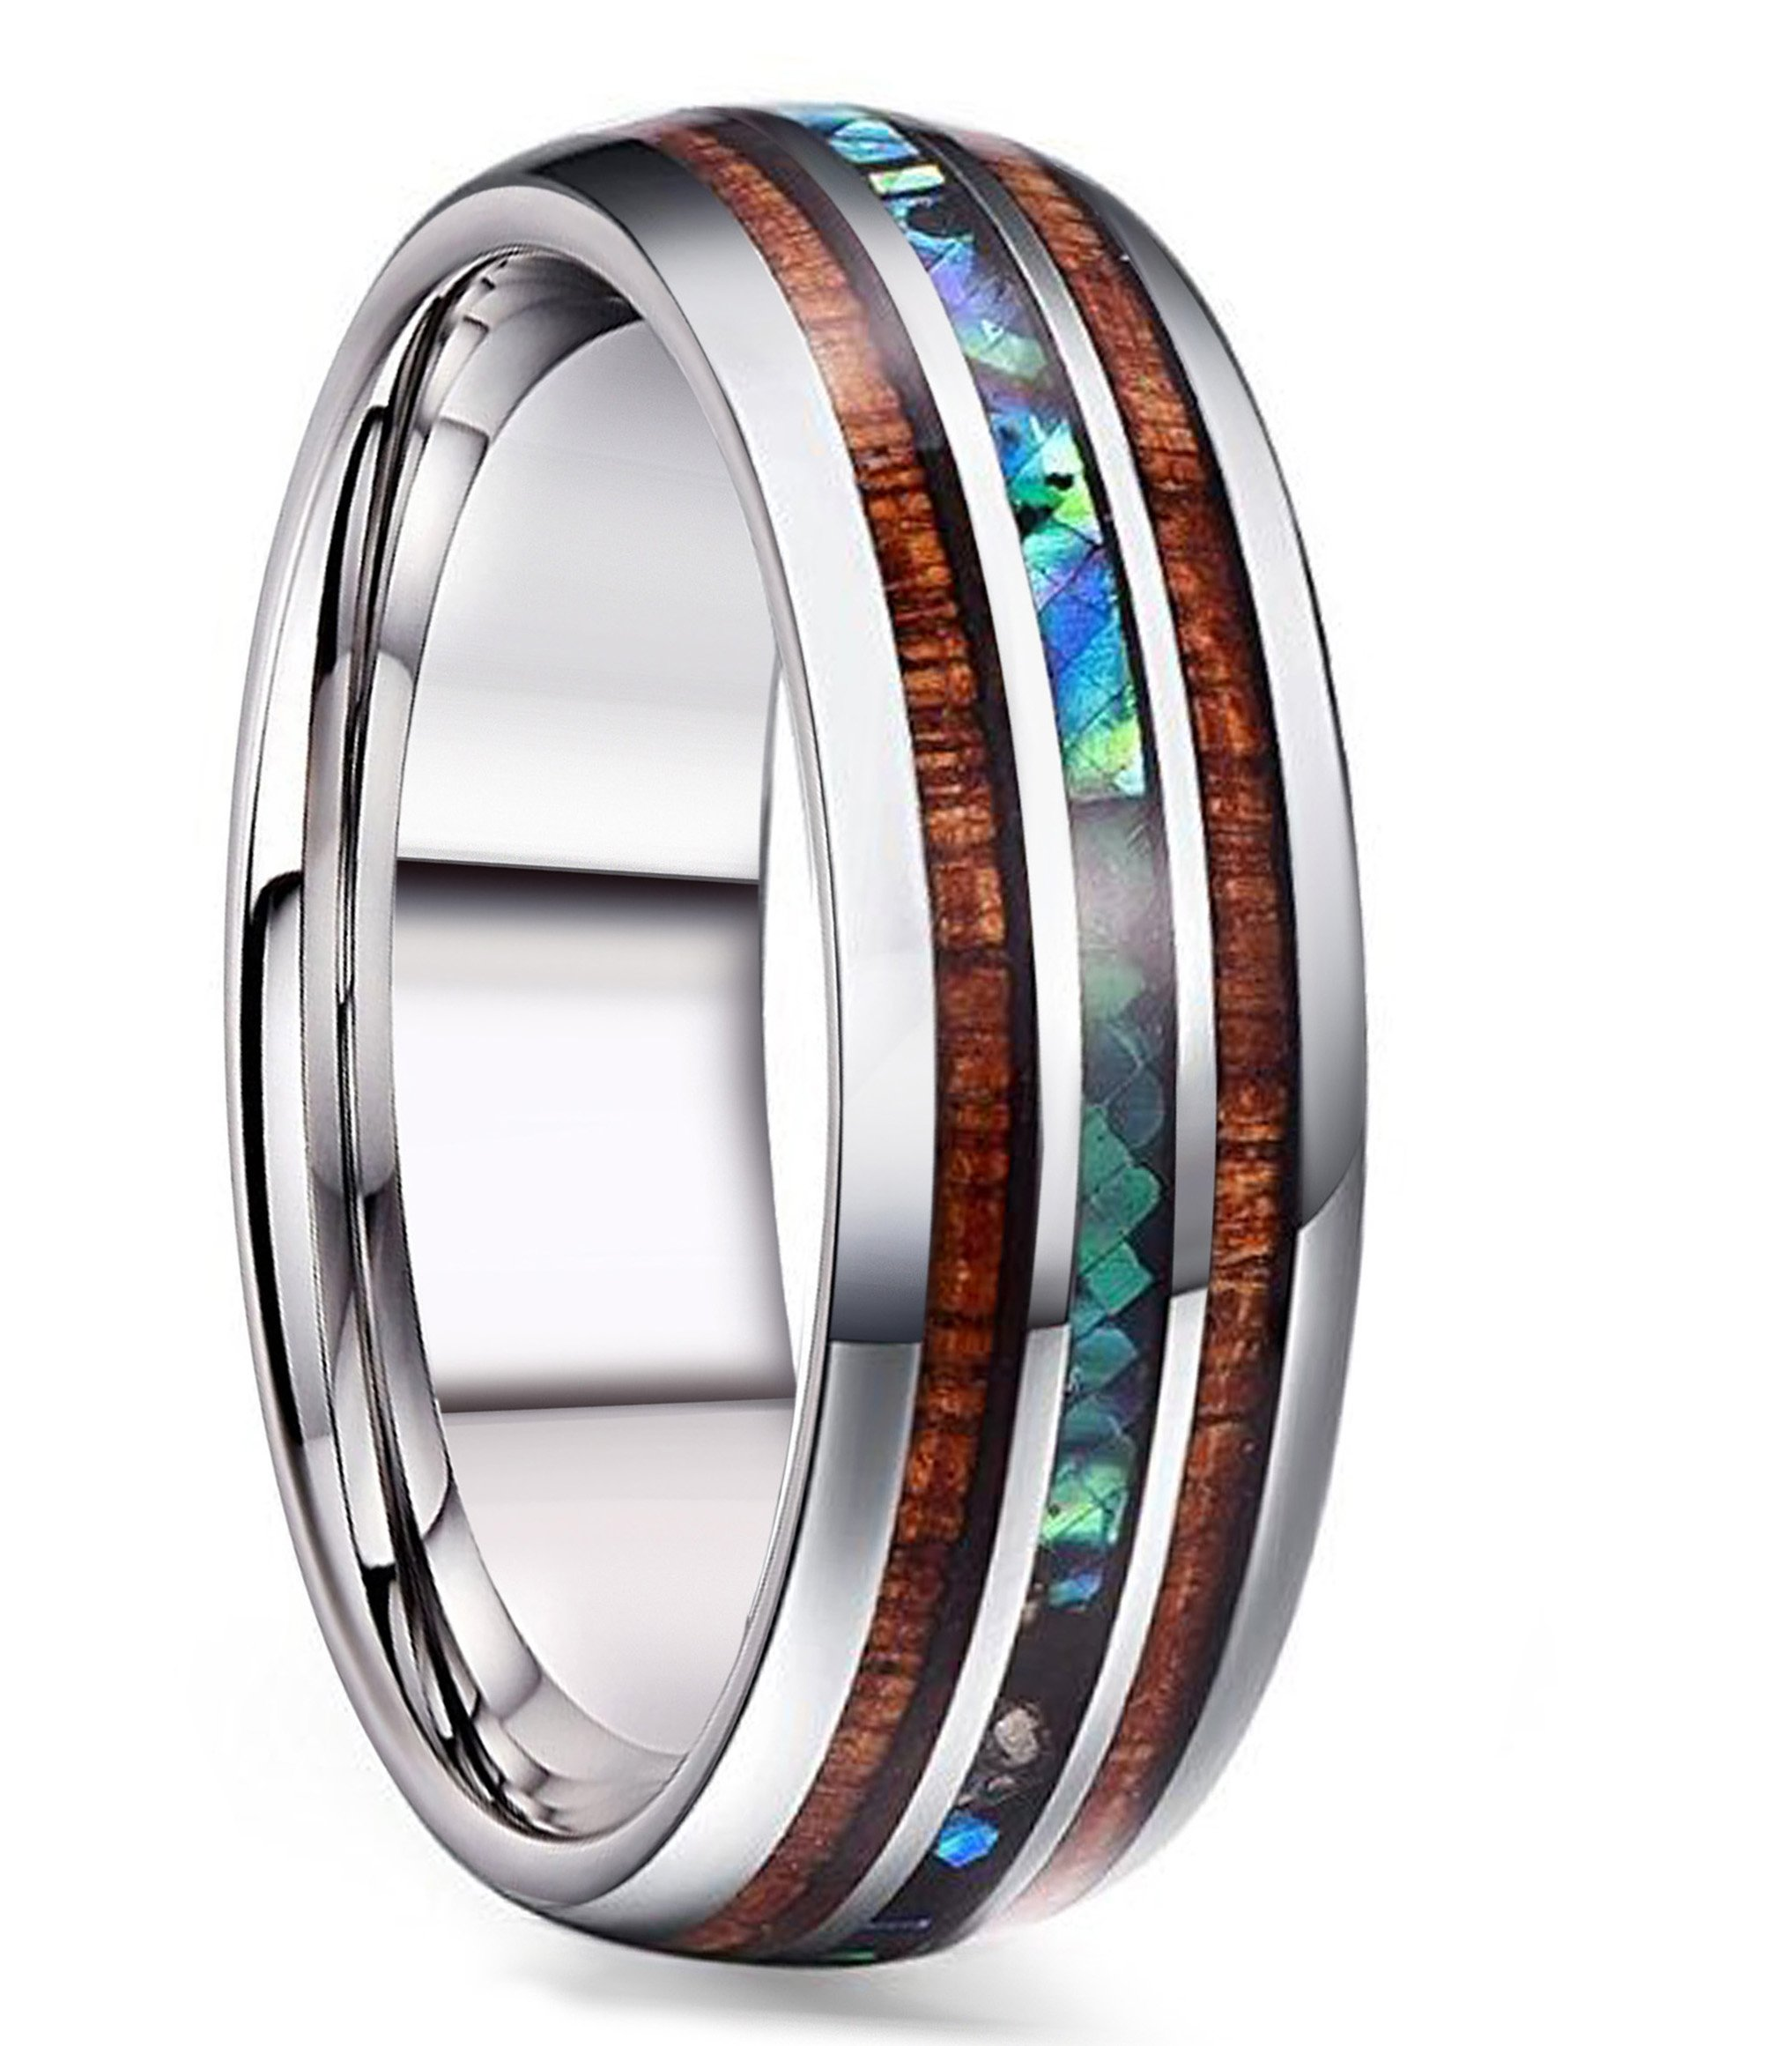 FIBO STEEL 8MM Titanium Wedding Band Ring for Men Women Wood and Abalone Shell Inlaid Size 8